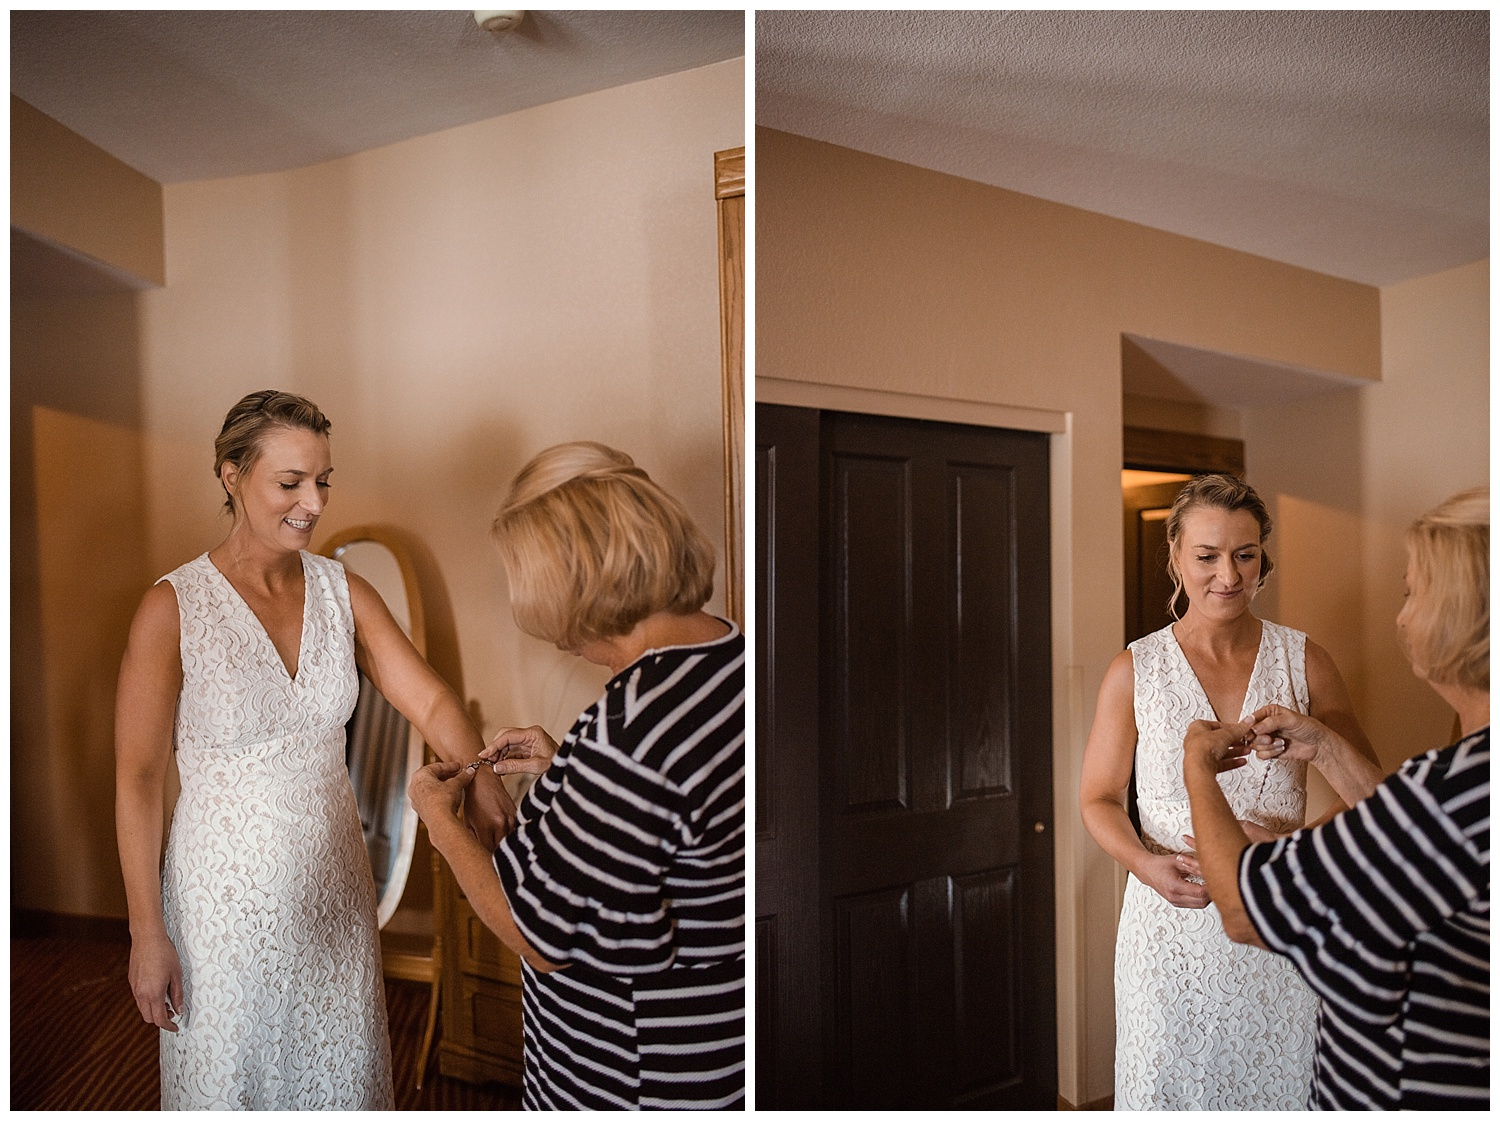 getting ready for the wedding, estes park resort, rocky mountain elopement photographer, rocky mountain wedding photographer, colorado wedding photographer, Estes Park wedding photographer